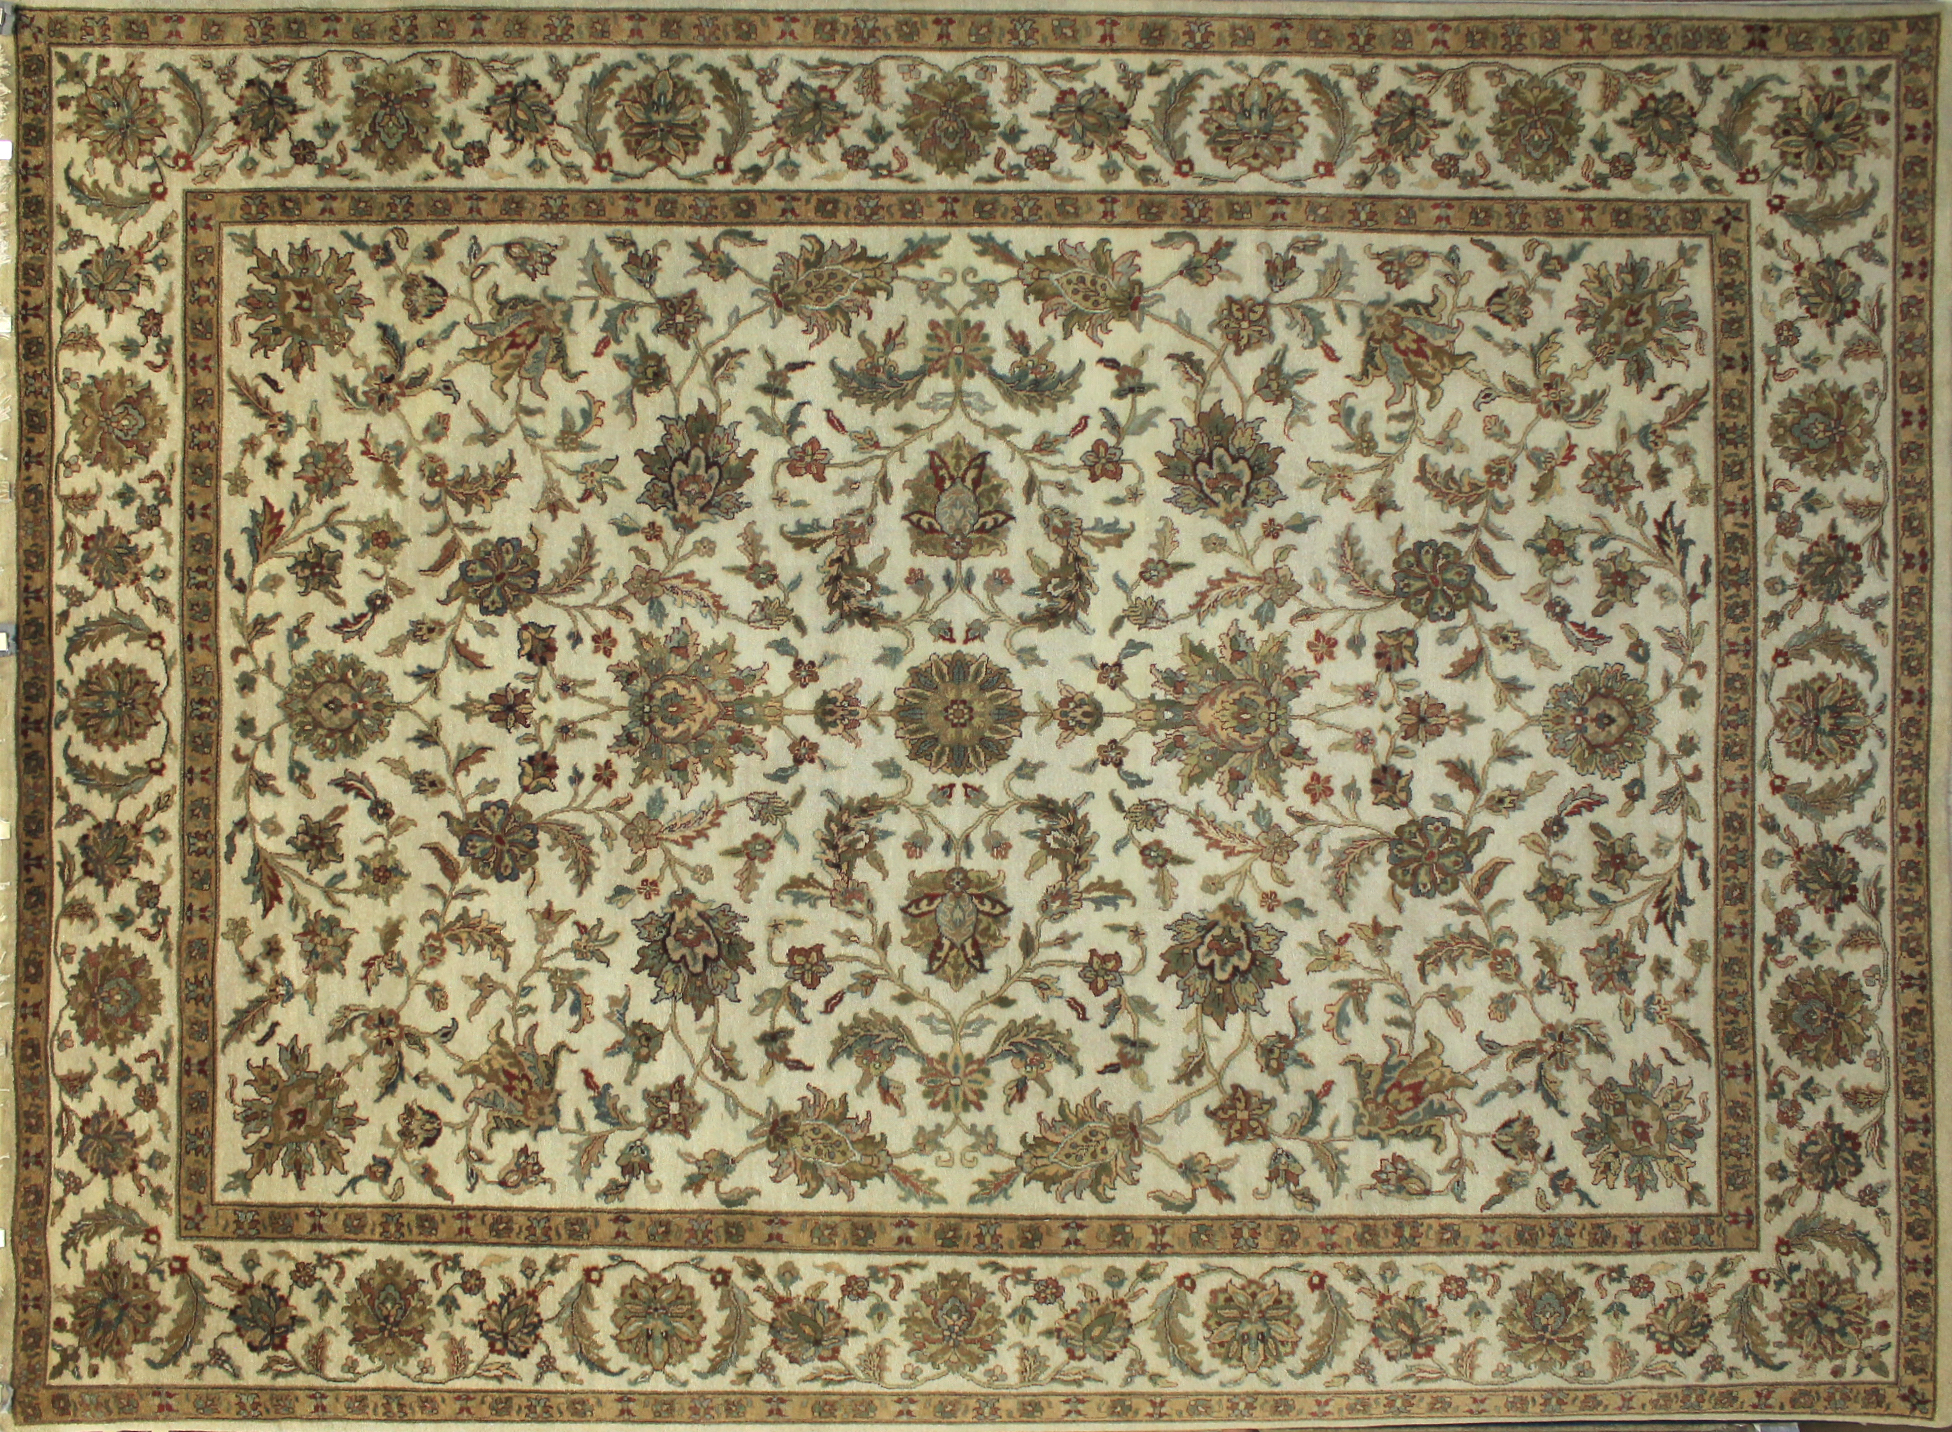 9x12 Jaipur Hand Knotted Wool Area Rug - MR3664